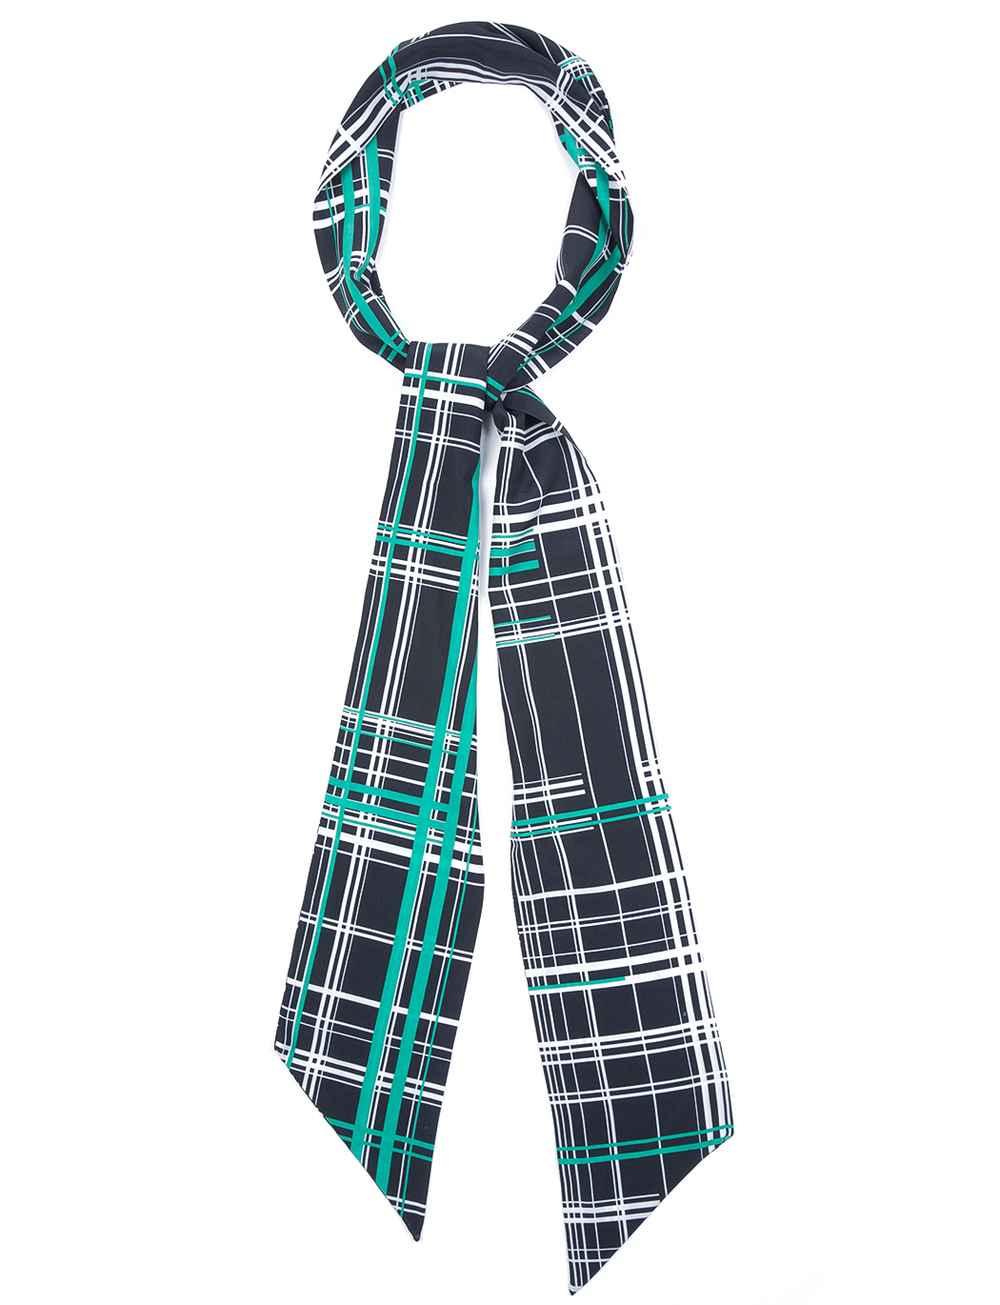 Skinny Tie Scarf. Available in multiple prints. ELOQUII. $19. Additional 30% off with code: YOU.